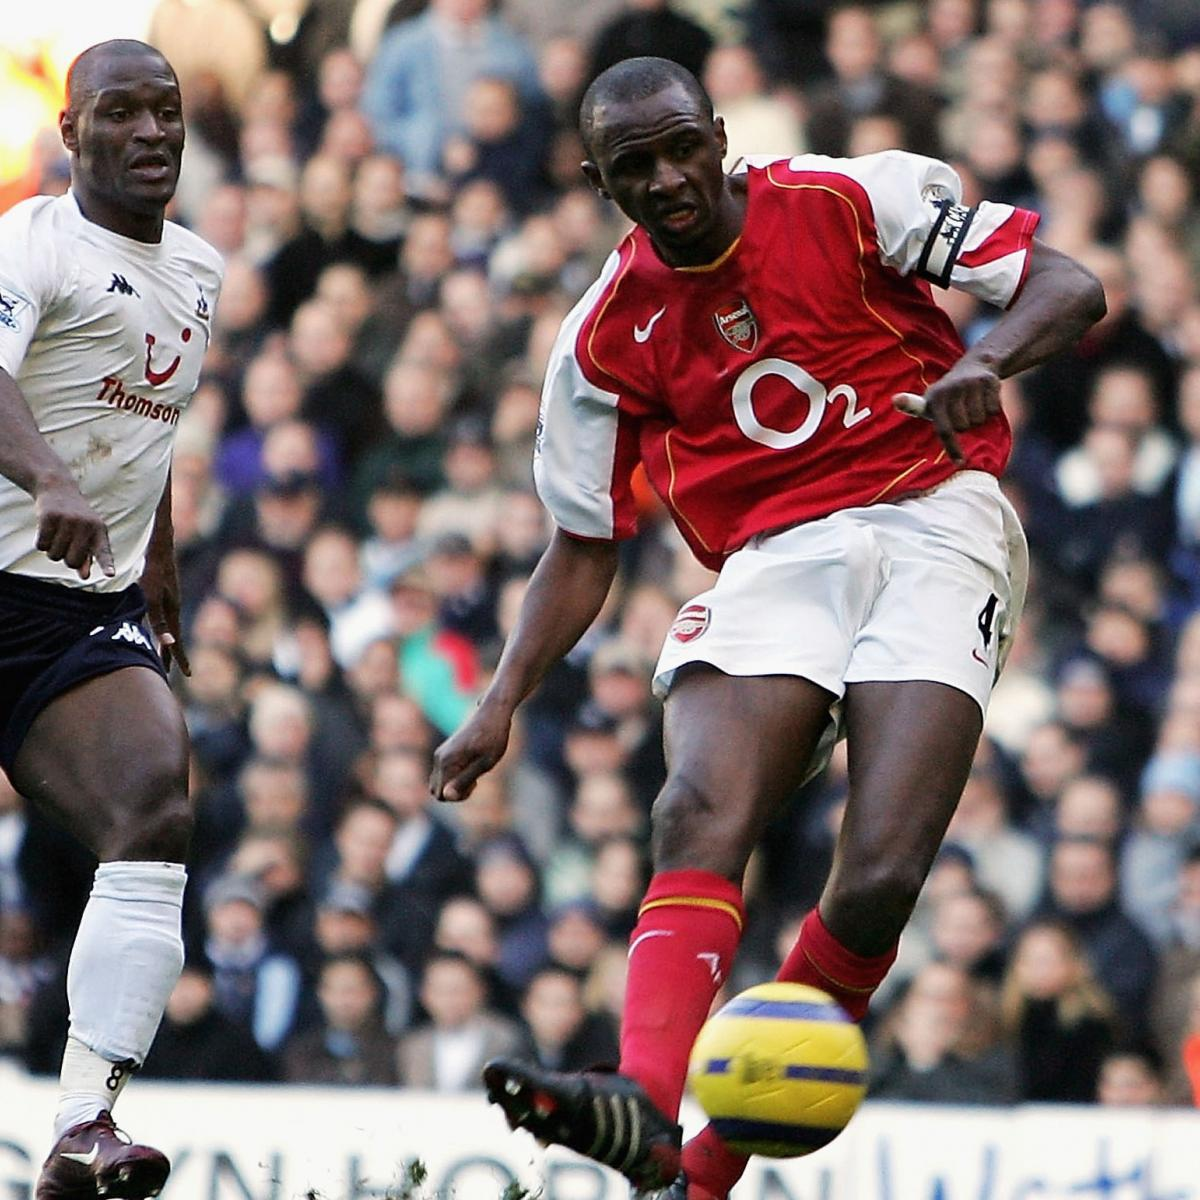 Arsenal Vs. Tottenham: 5 Key Matches In The History Of The